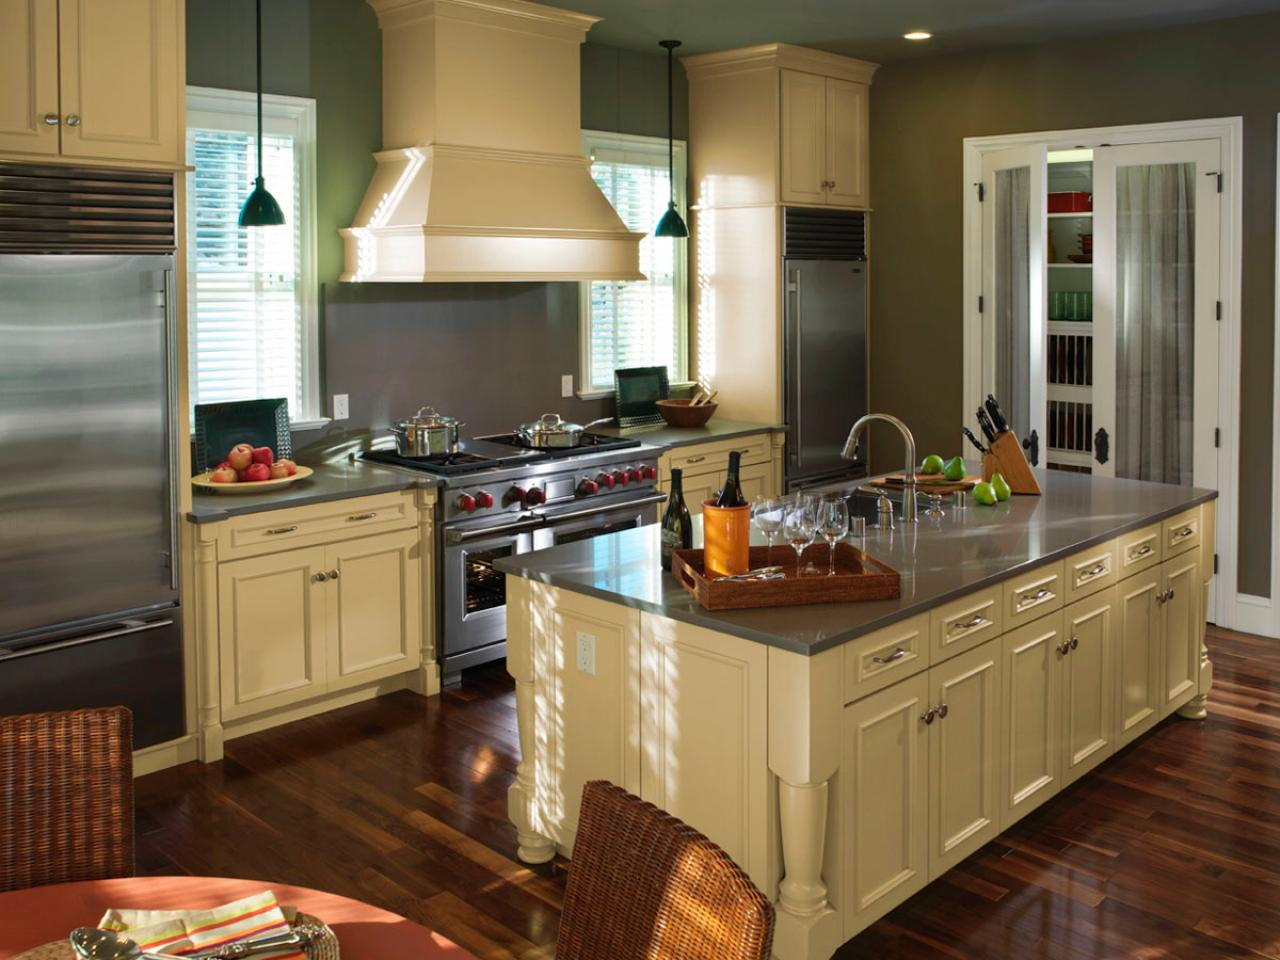 Modular Choosing Kitchen Materials | Hgtv pertaining to Kitchen Layouts With Island